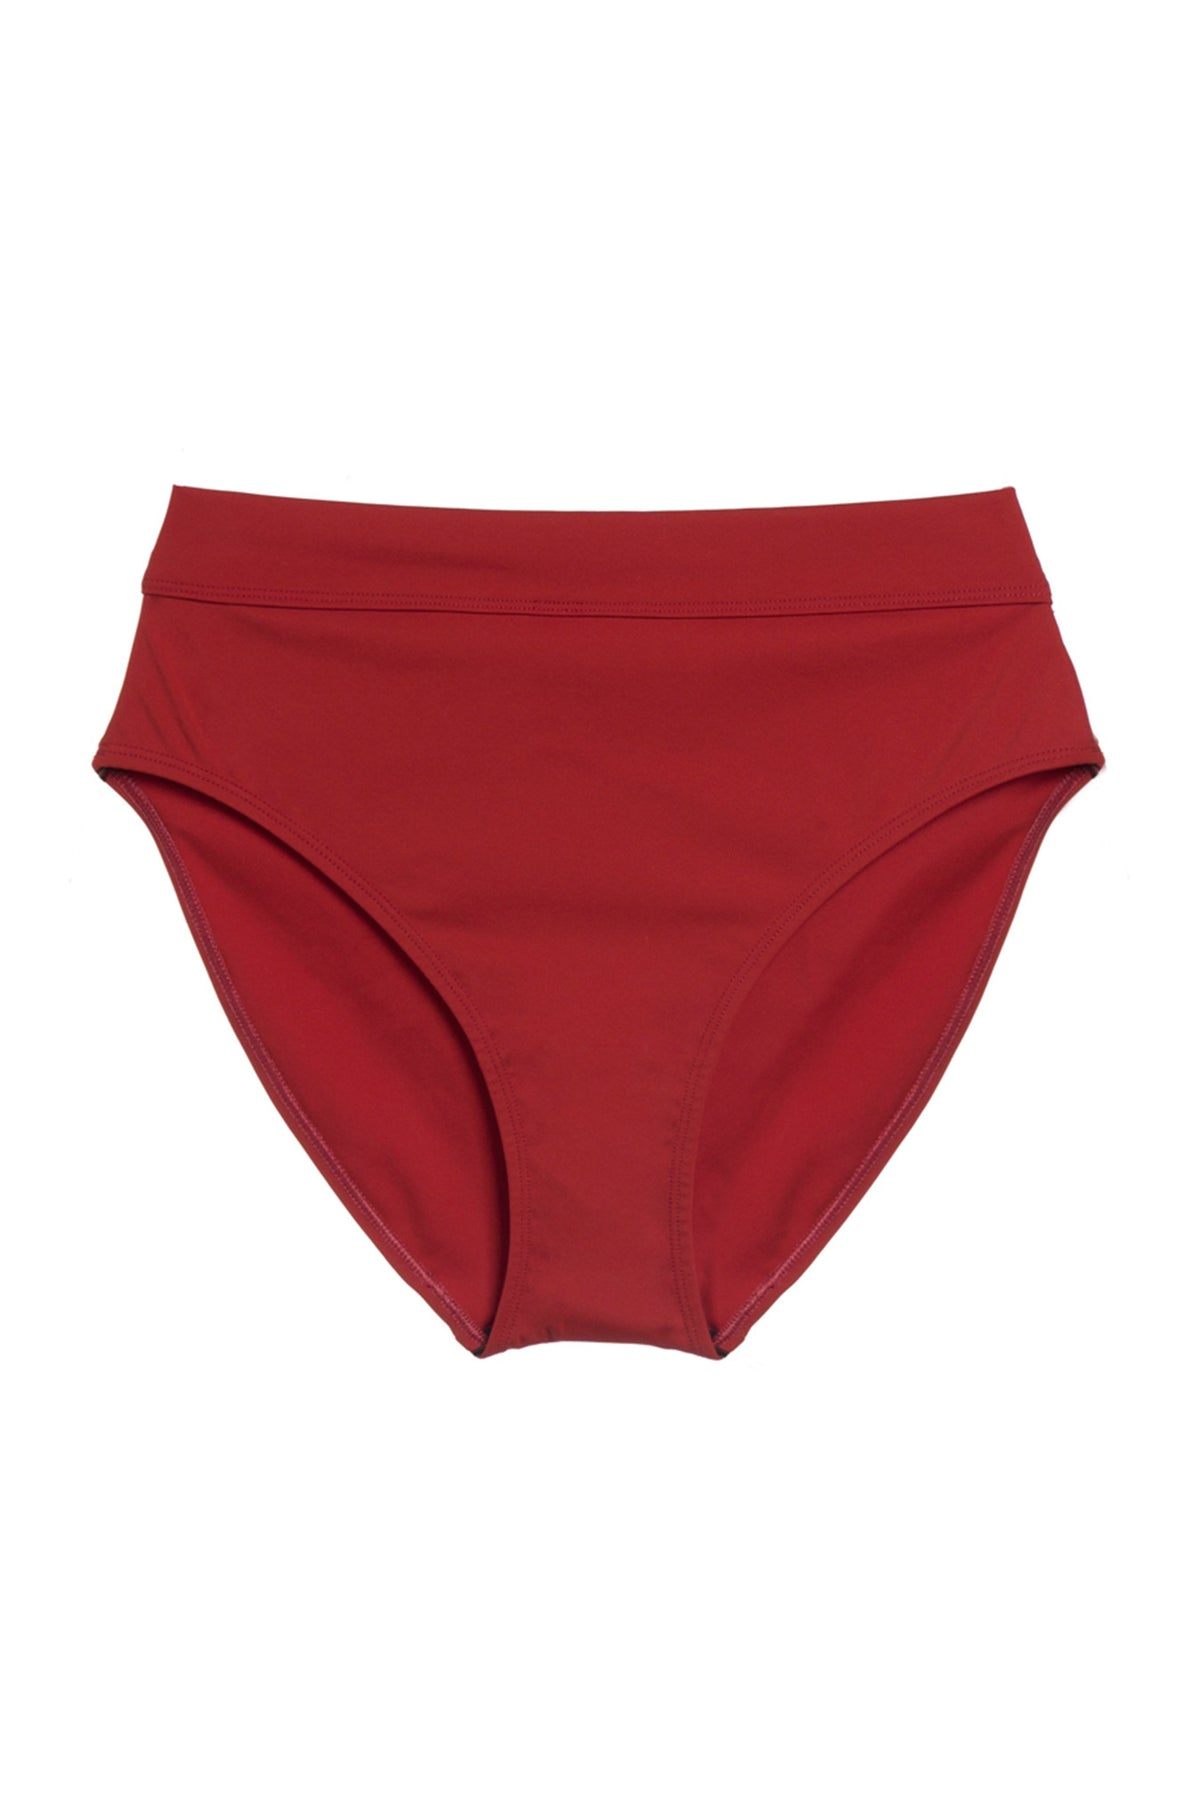 e507ace88edc5 Mare High Waist Bikini Bottom in Paprika | ELSE Lingerie